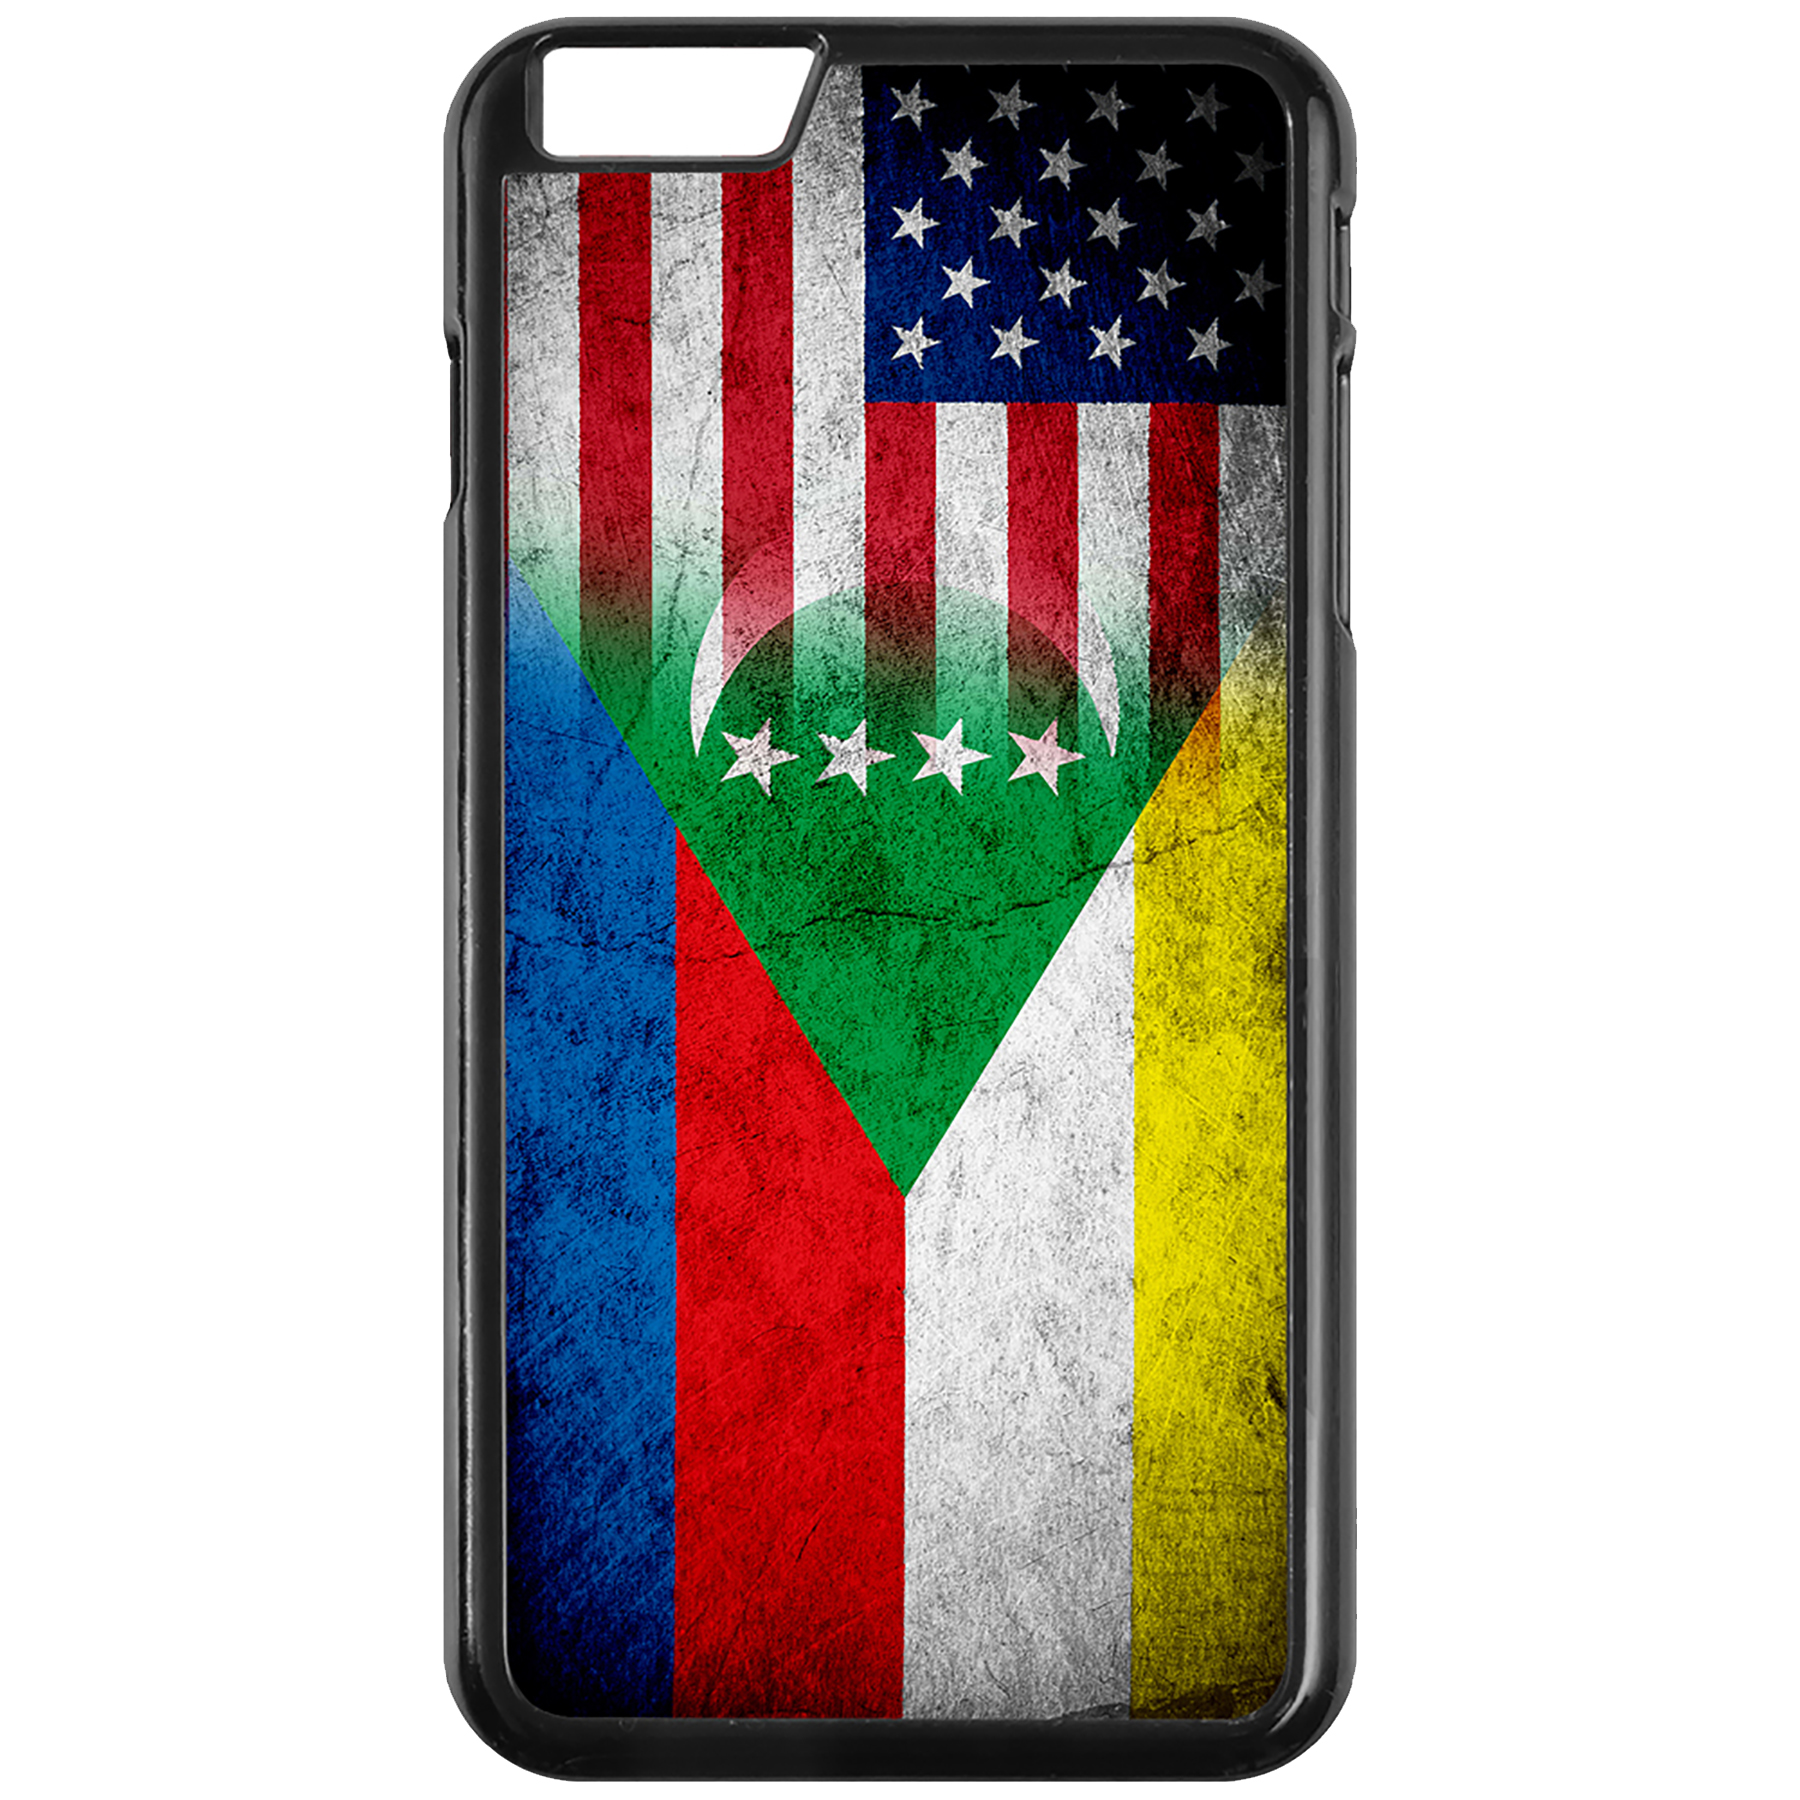 Apple-iPhone-Case-with-Flag-of-Comoros-Comorian-Many-Design-Options thumbnail 85